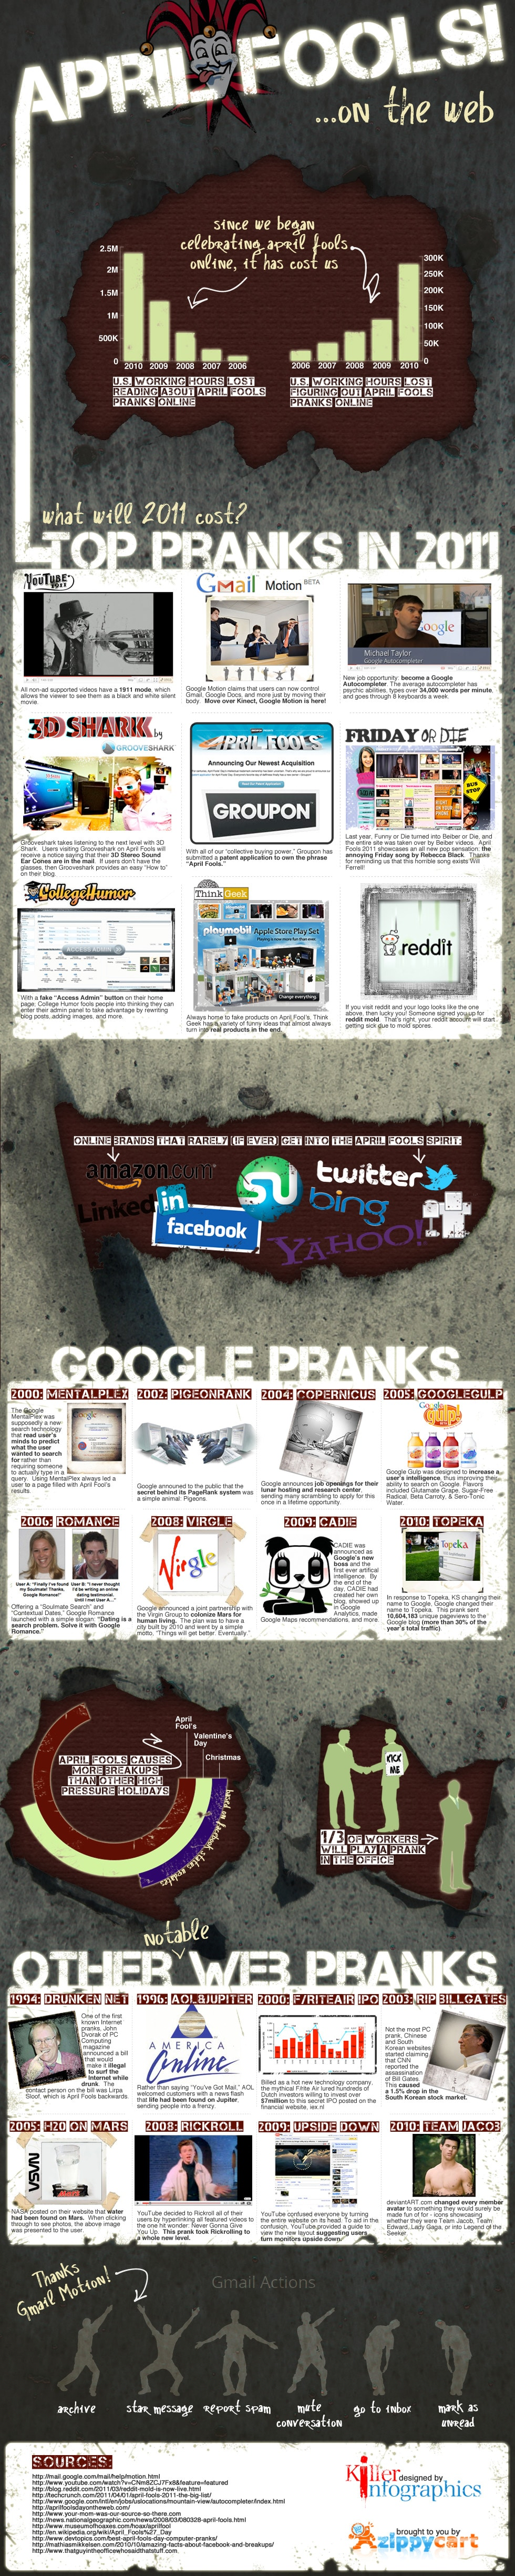 2011 Top April Fool's Pranks Roundup [Infographic]